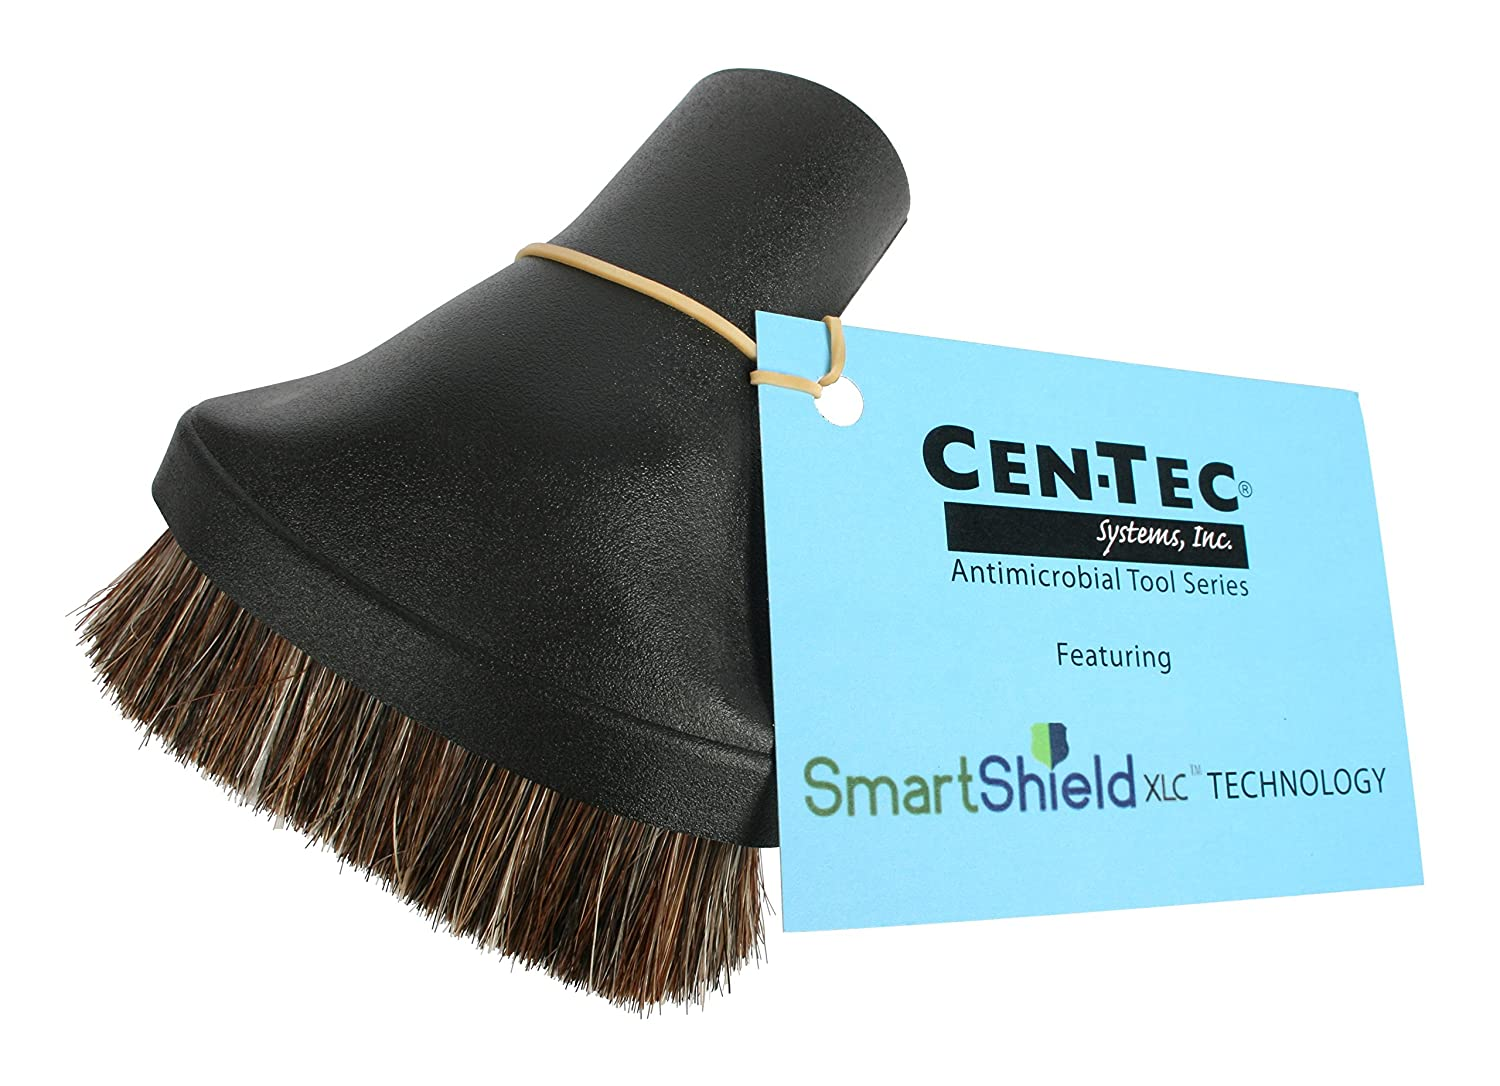 Cen-Tec Systems 34839 Premium Dusting Brush Vacuum Tool with Soft Fill and Applied Anti-Microbial Spray, Black 34839AM